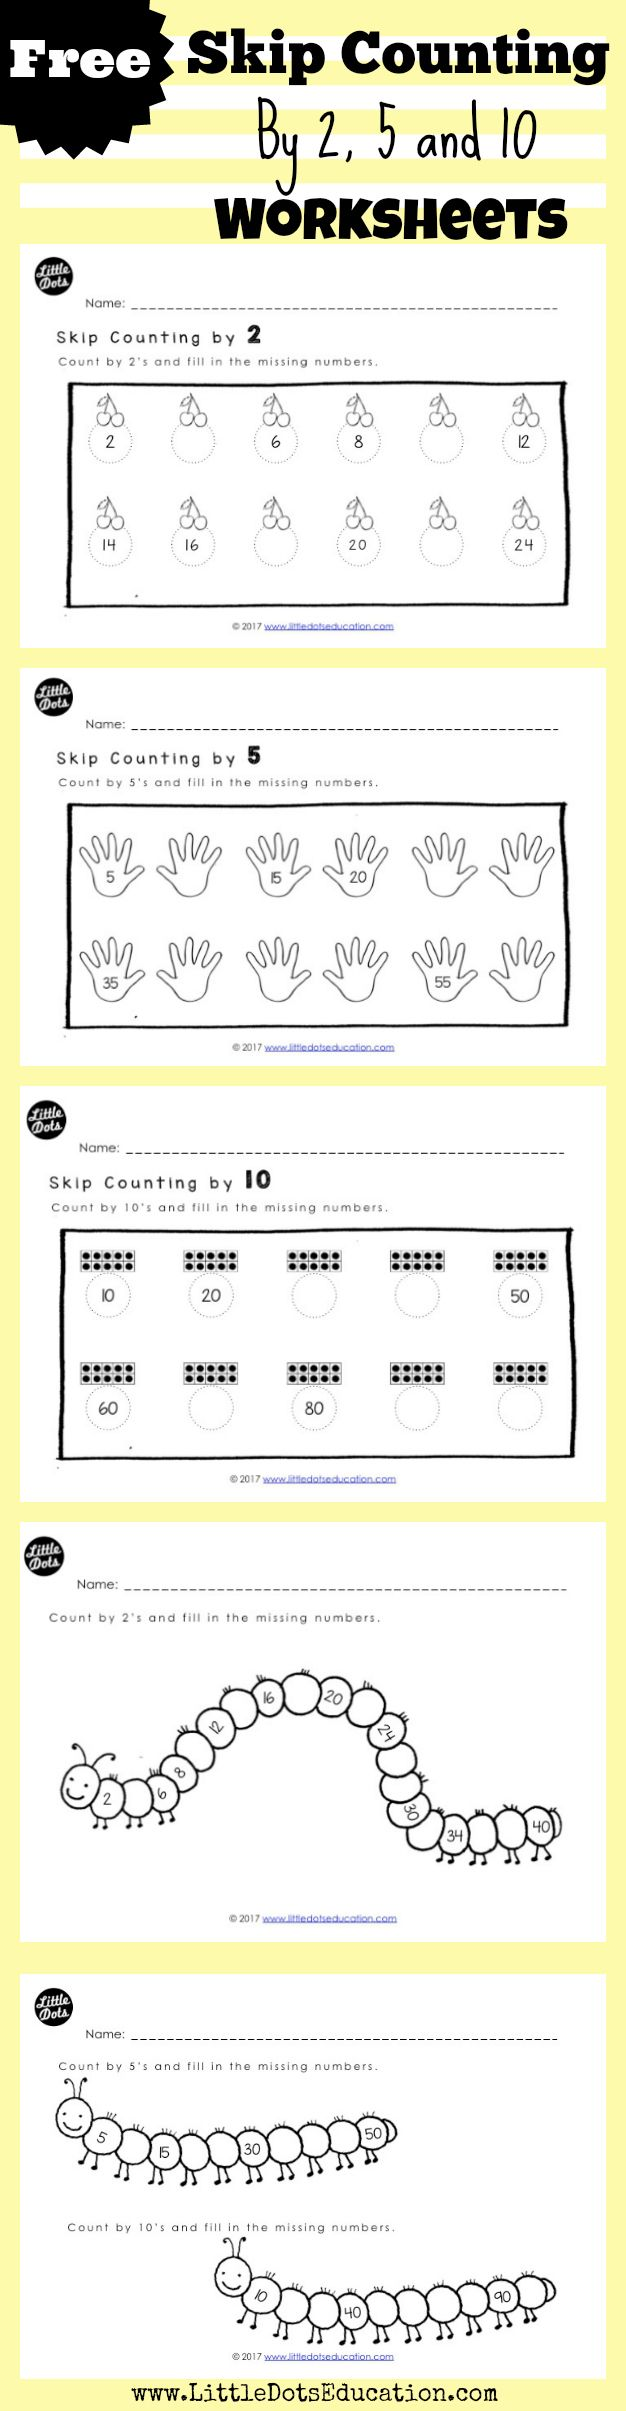 free skip counting worksheets and activities for kindergarten to grade 1 level practice to skip. Black Bedroom Furniture Sets. Home Design Ideas